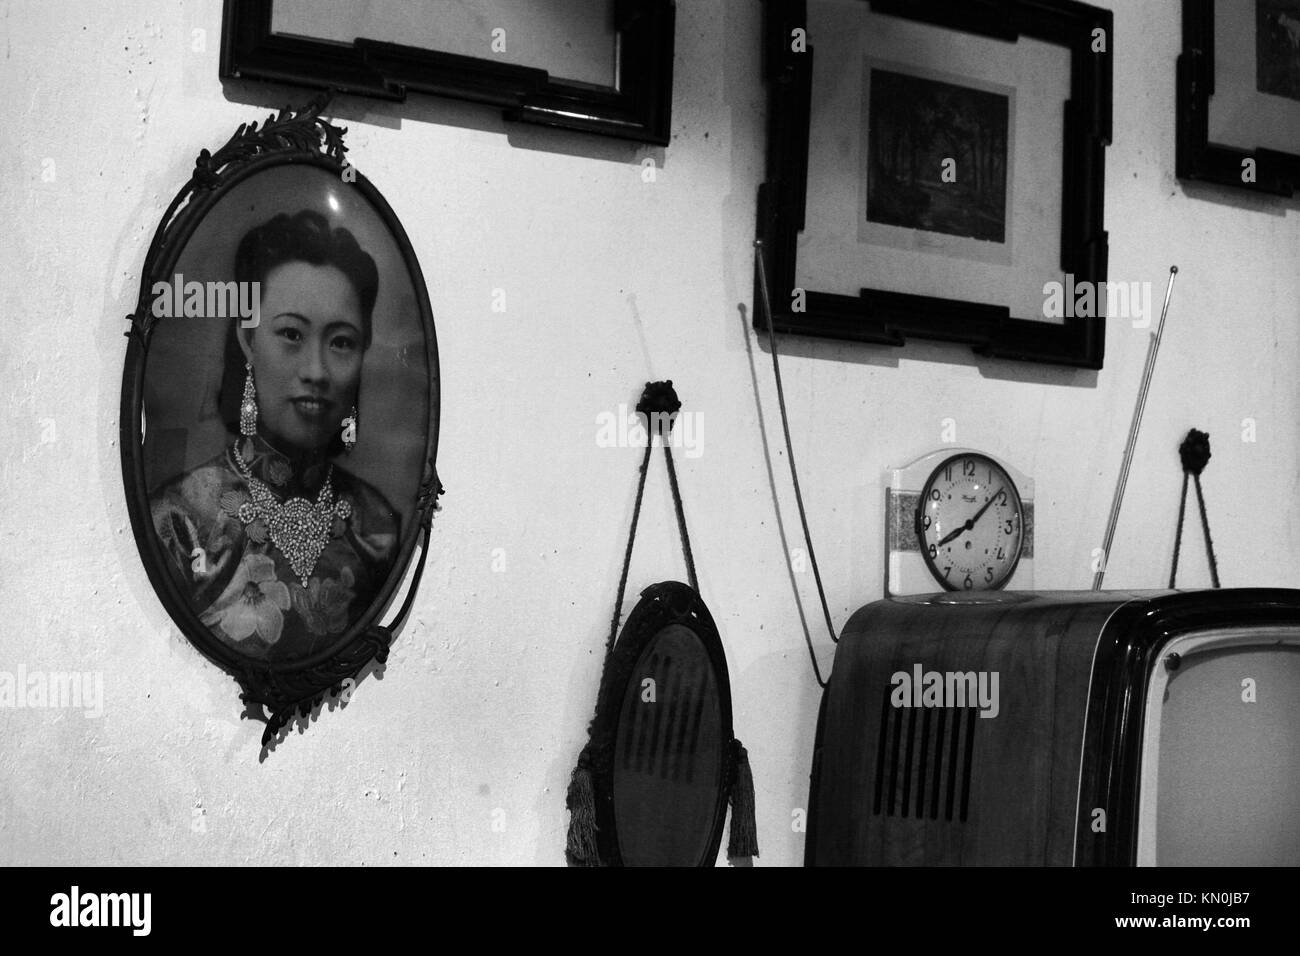 A wall display of historical and family framed portraits and mirror reflections in the Sun Yat-Sen Museum Penang - Stock Image